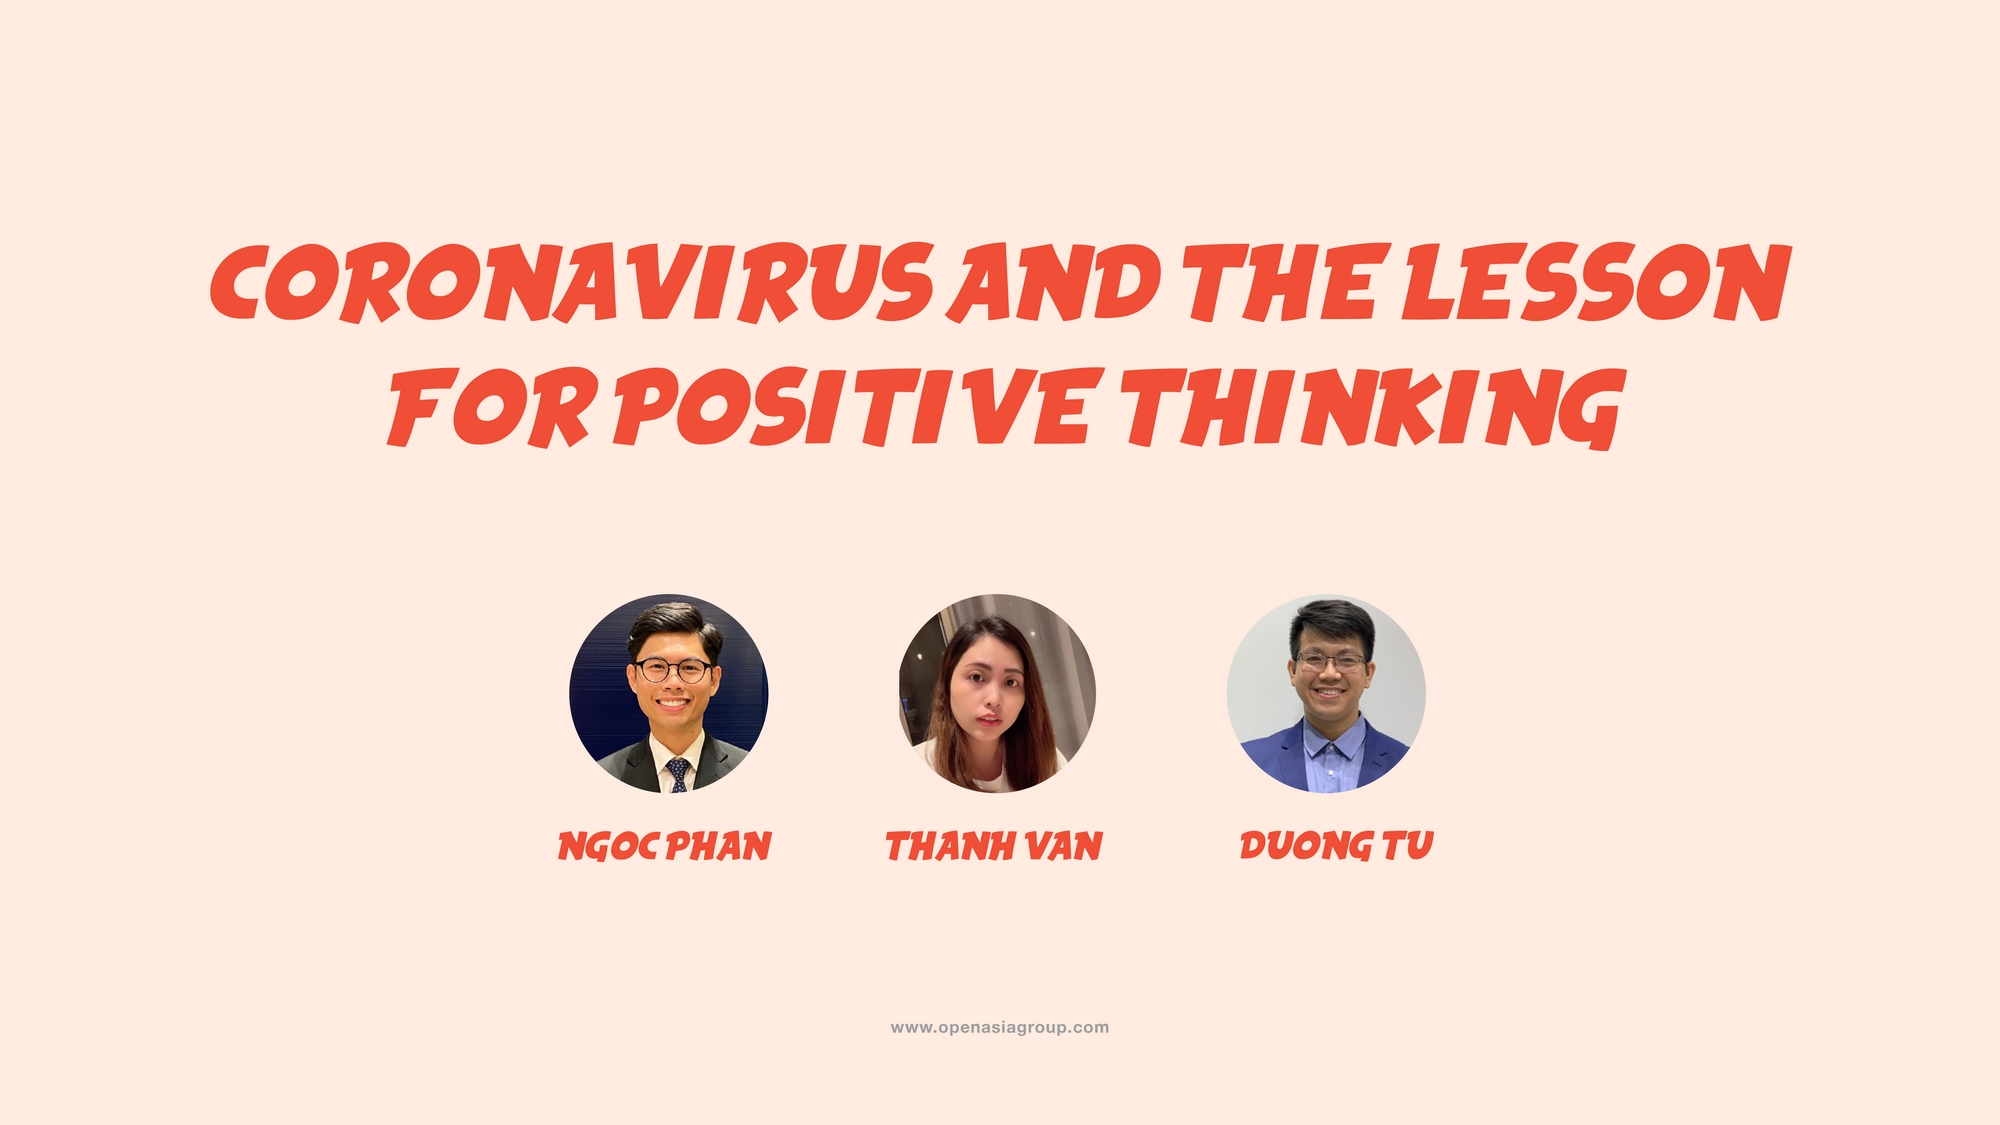 CORONAVIRUS AND THE LESSON FOR POSITIVE THINKING